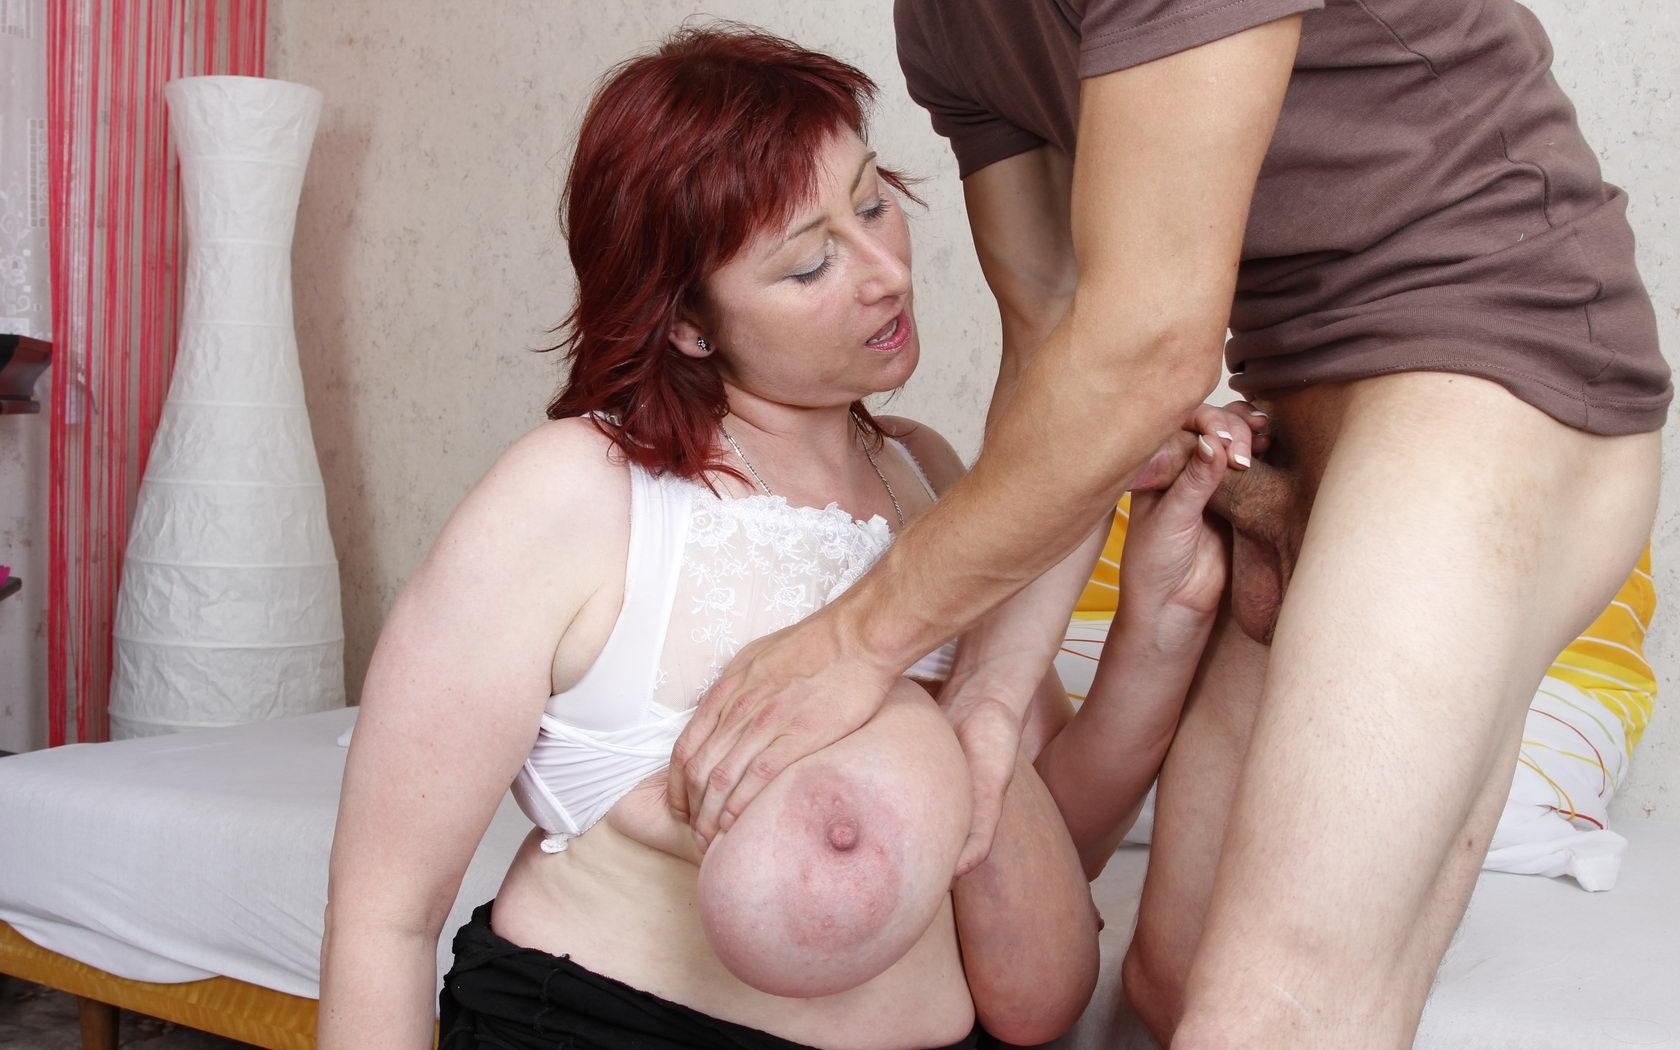 Dakota a granny makes a young dude com on her saggy titties